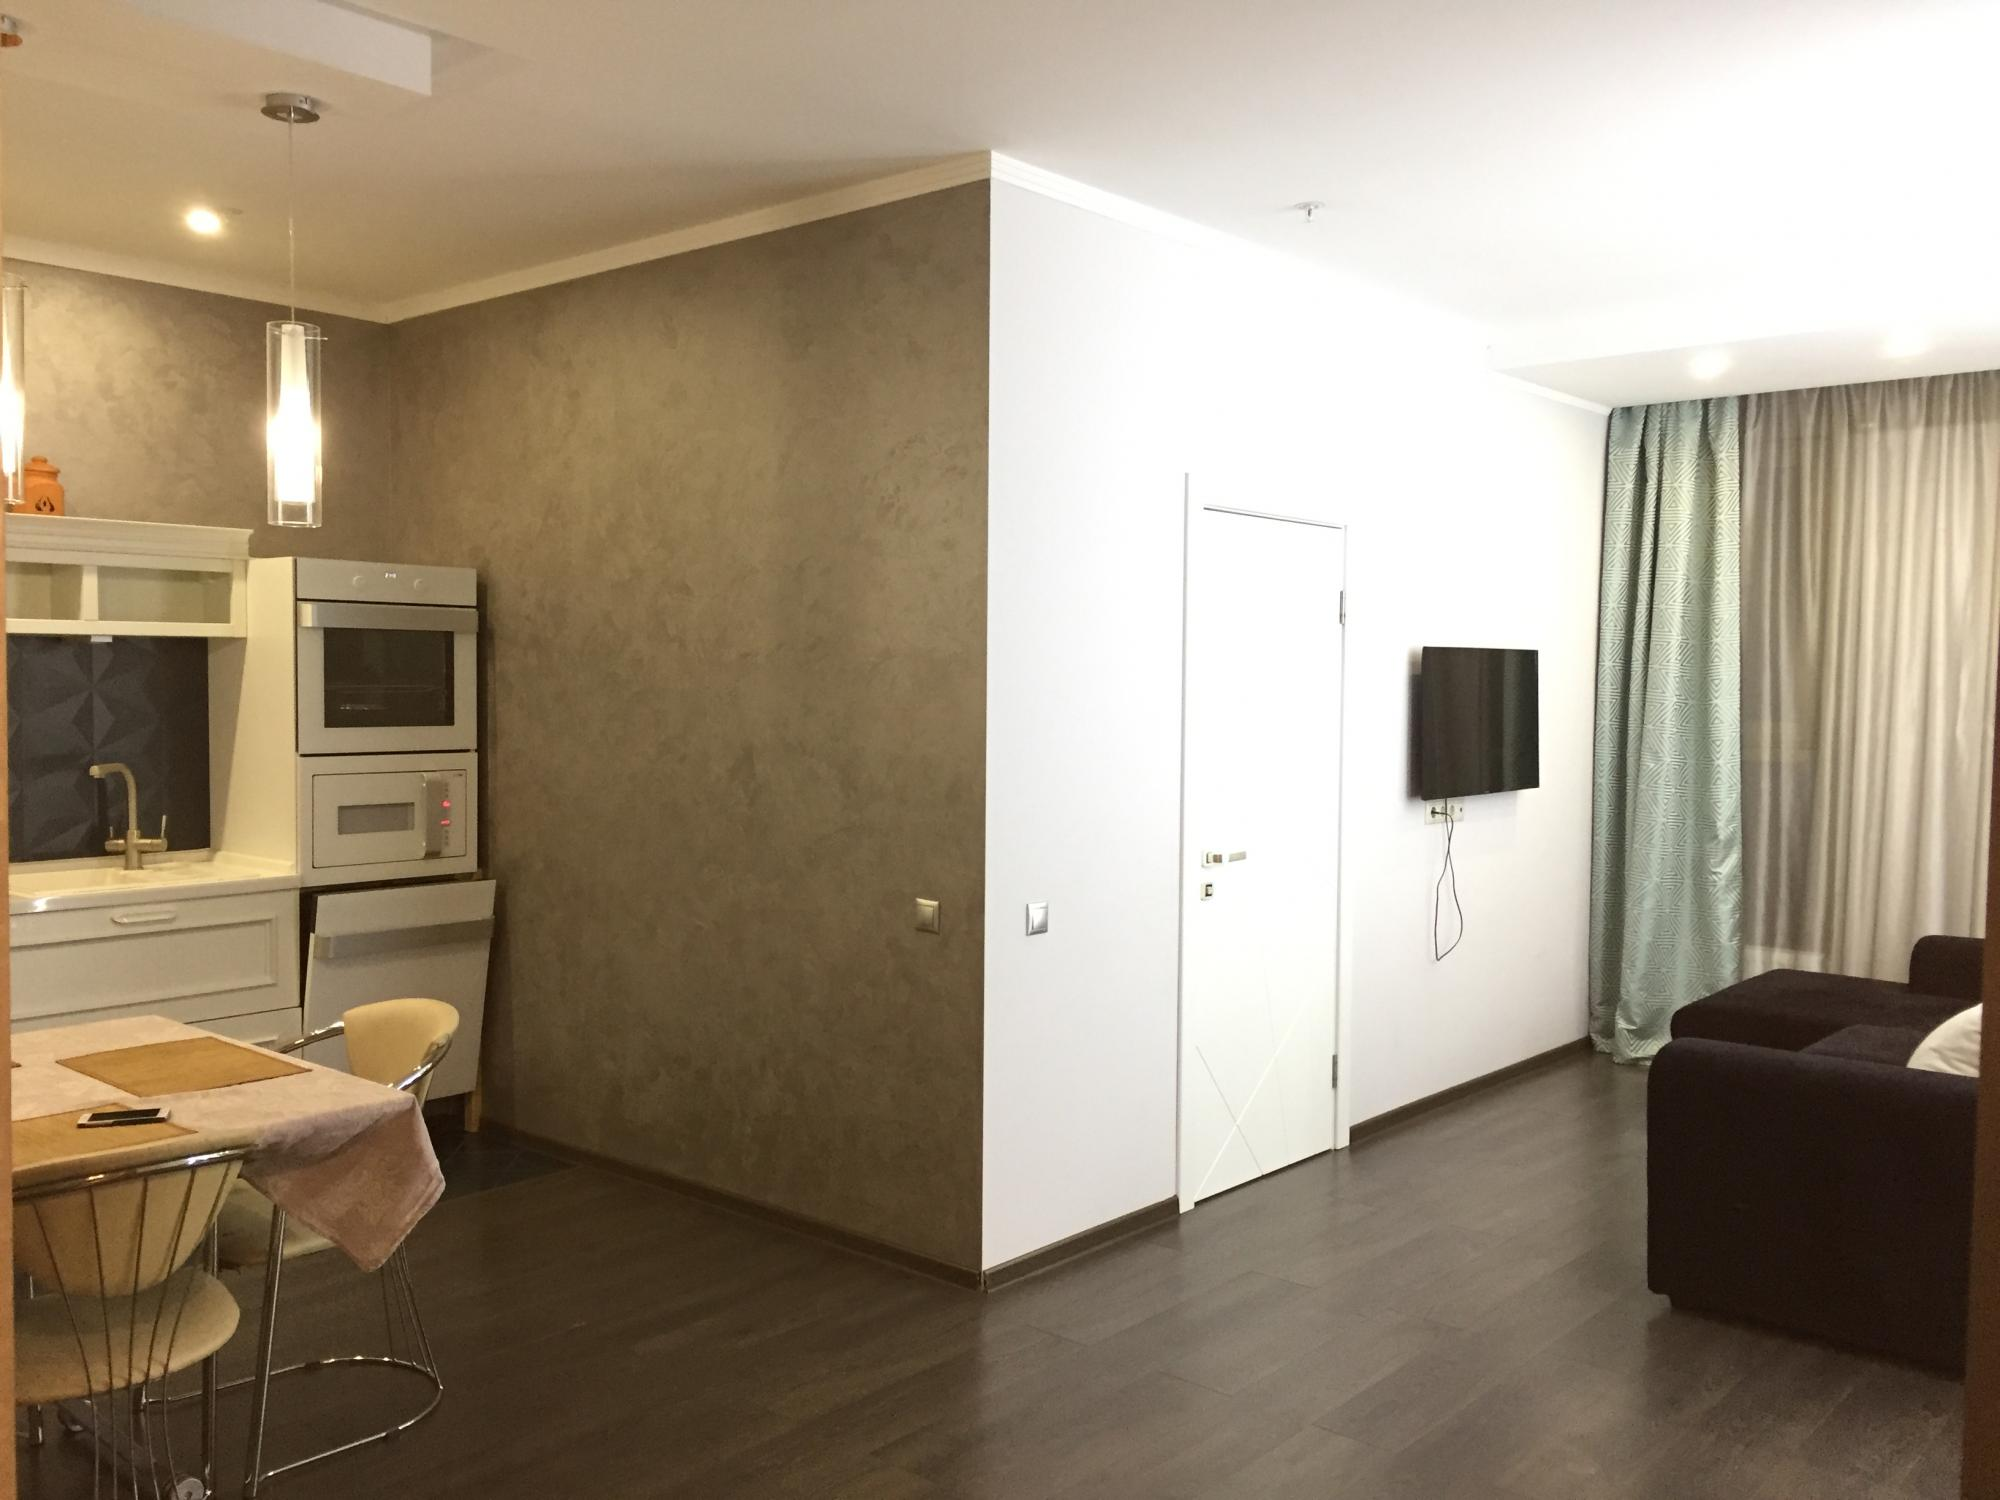 Apartment, 3 rooms, 68 m2 in Moscow 89160962328 buy 2